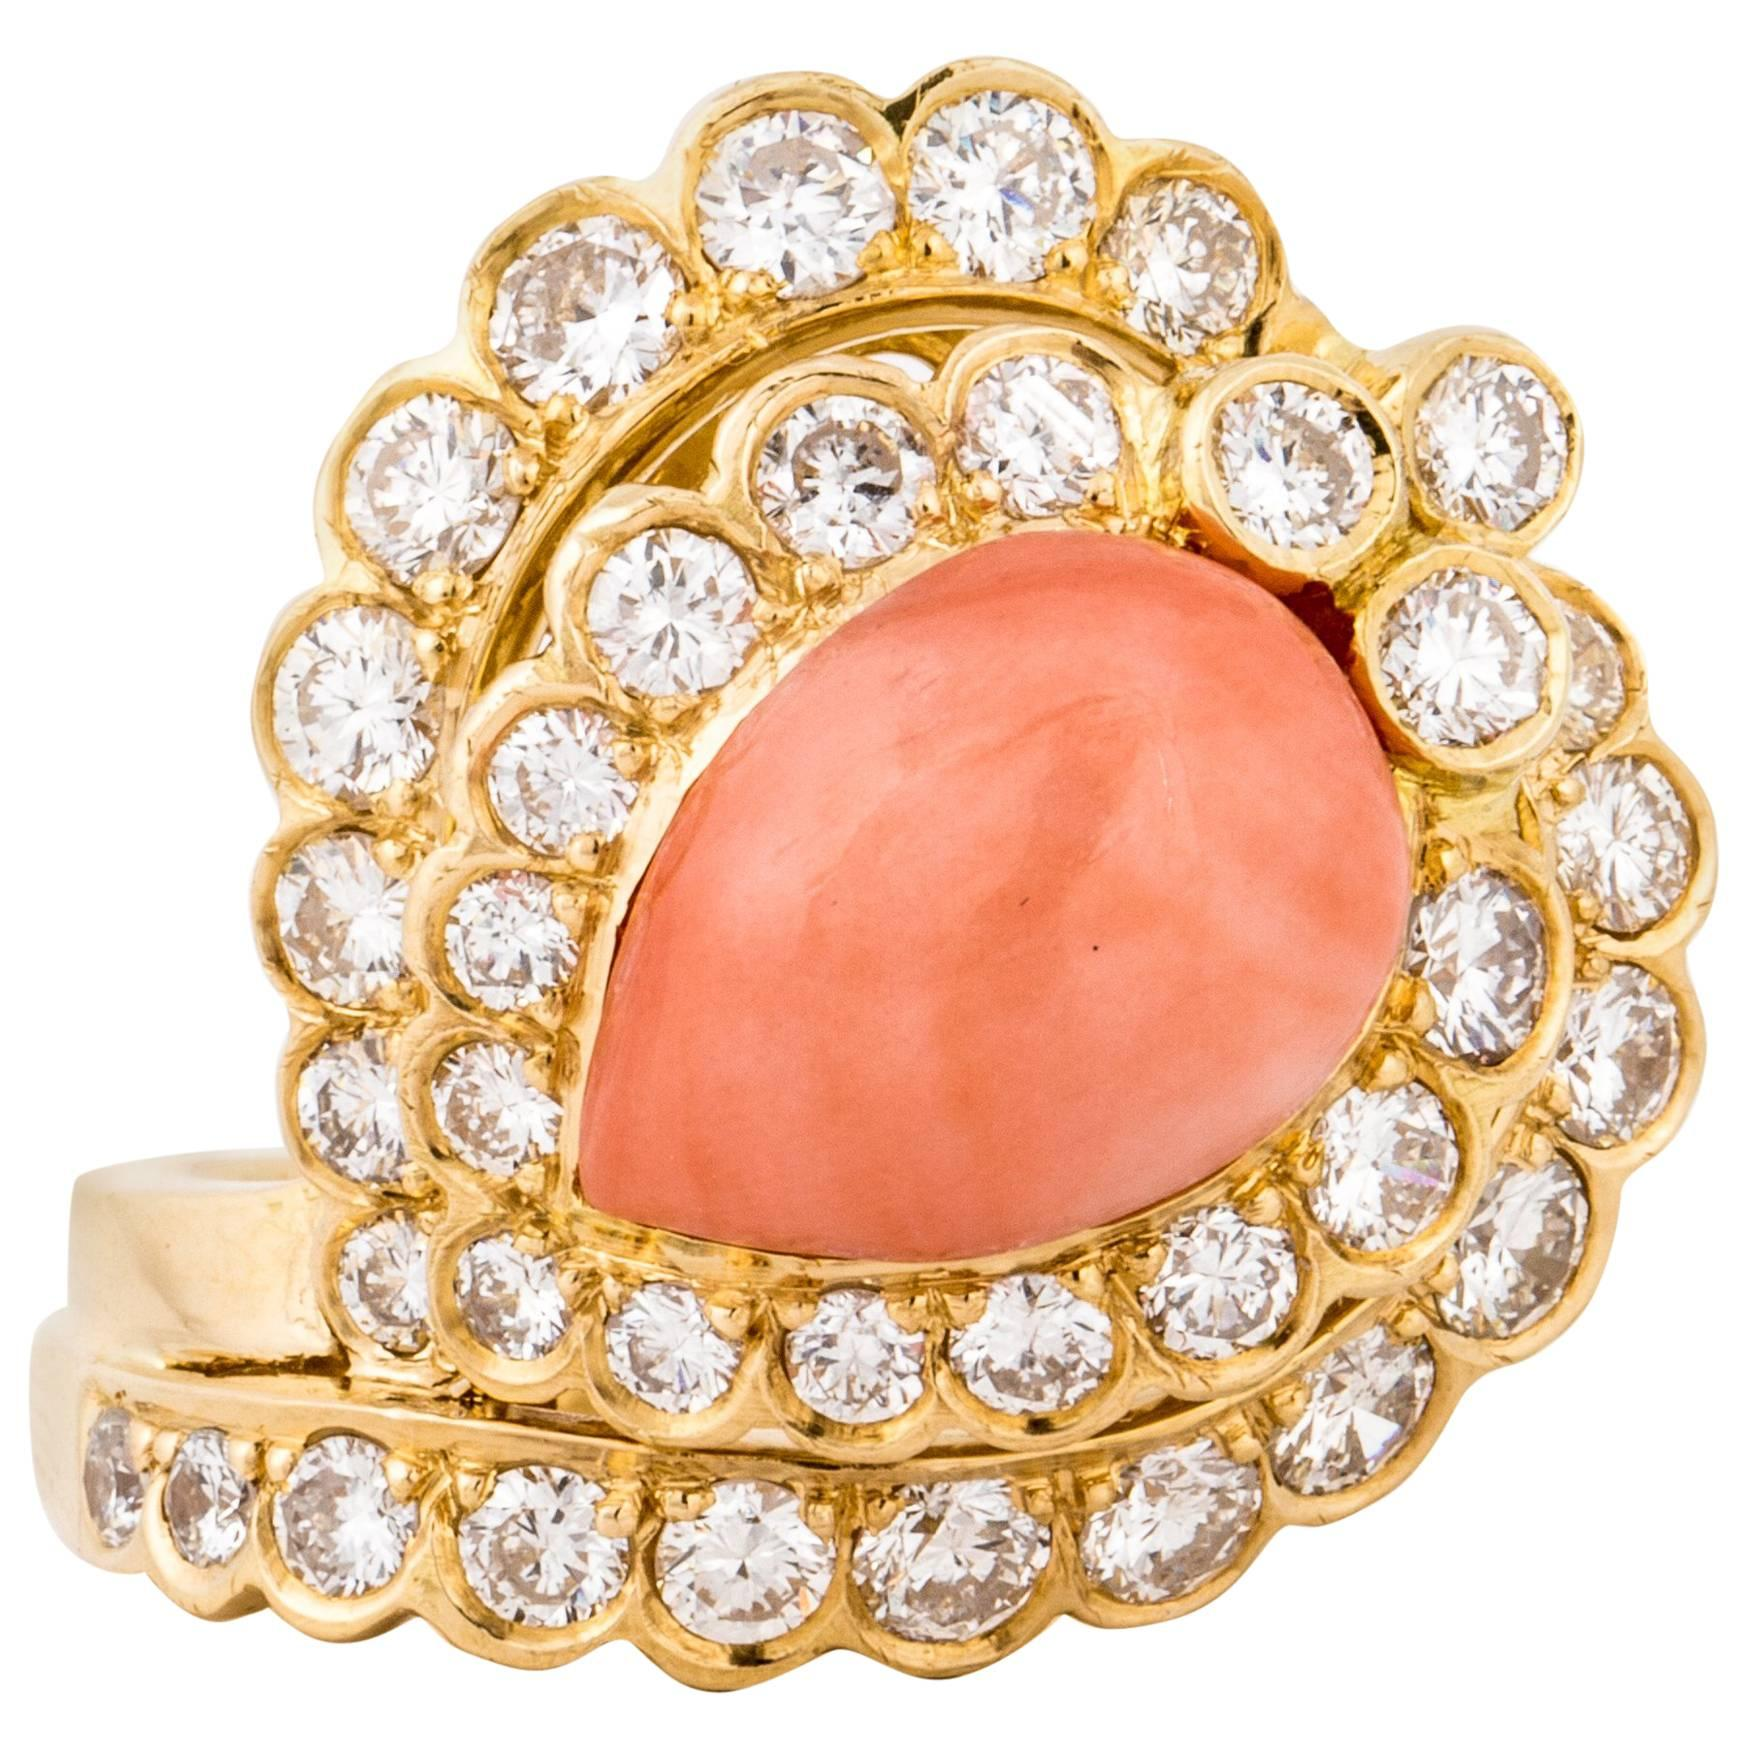 Coral and Diamond Cocktail Ring in 18K Gold